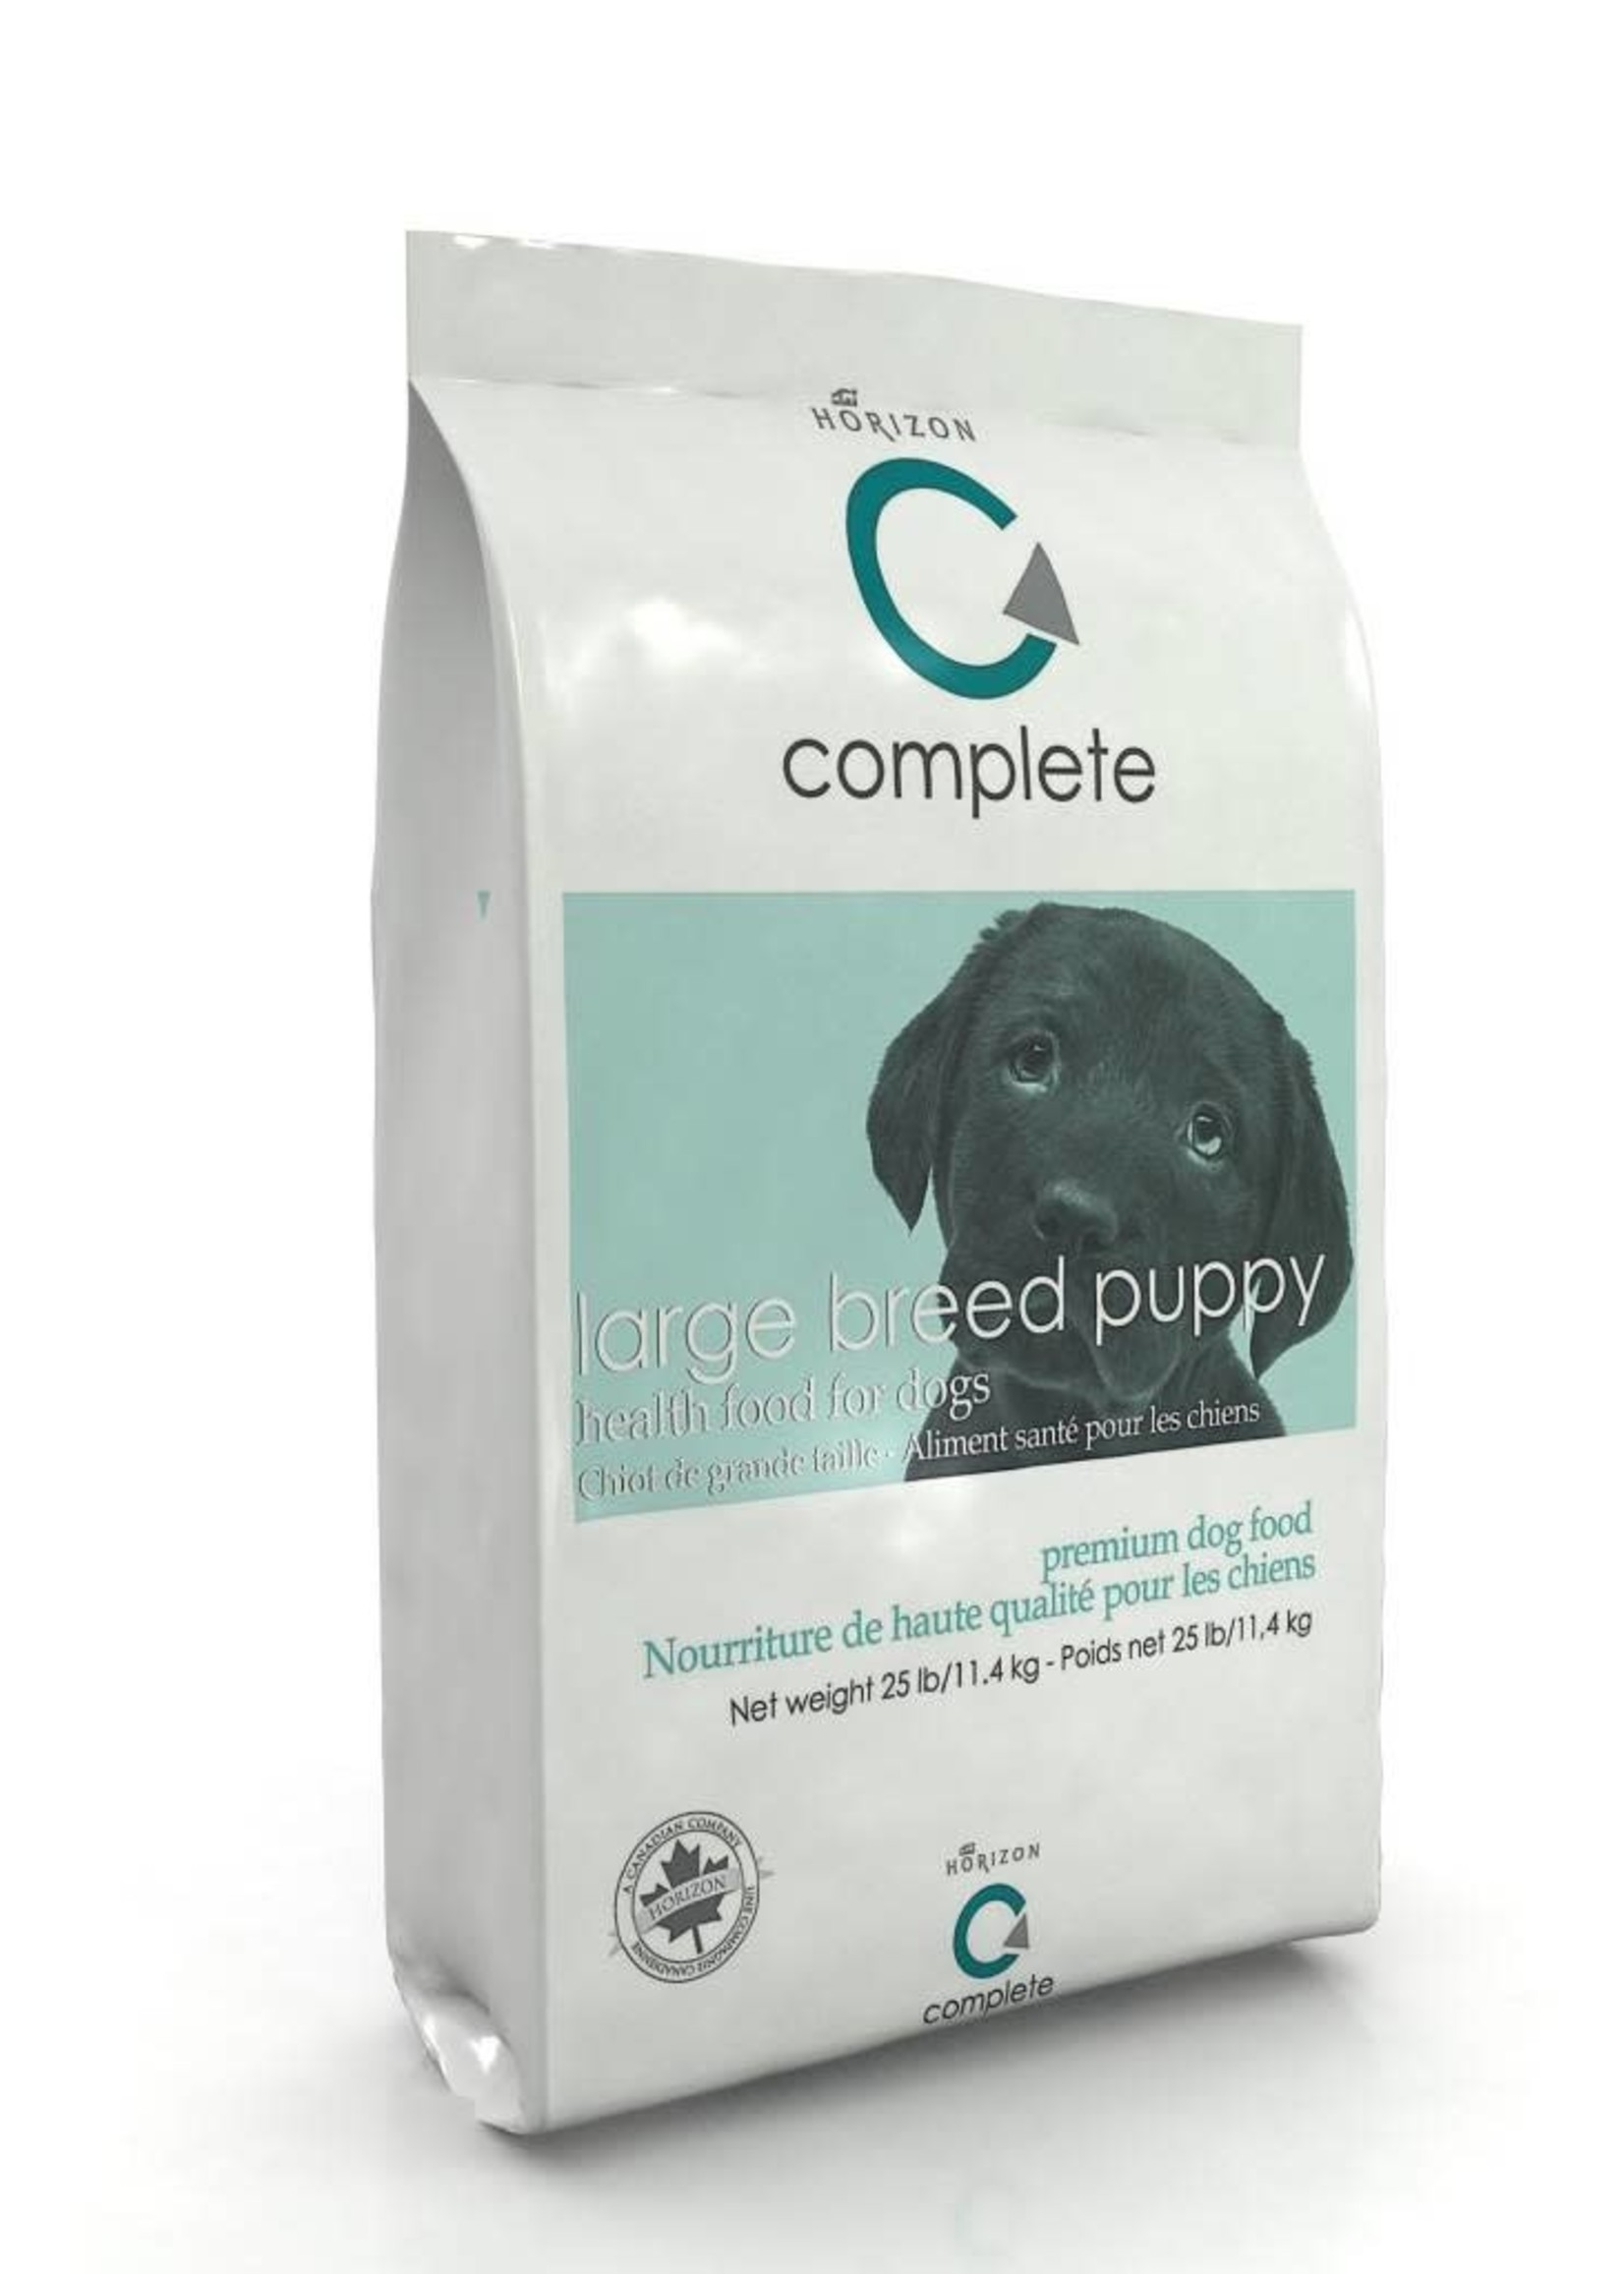 Horizon Complete Puppy Large Breed 11.4 kg